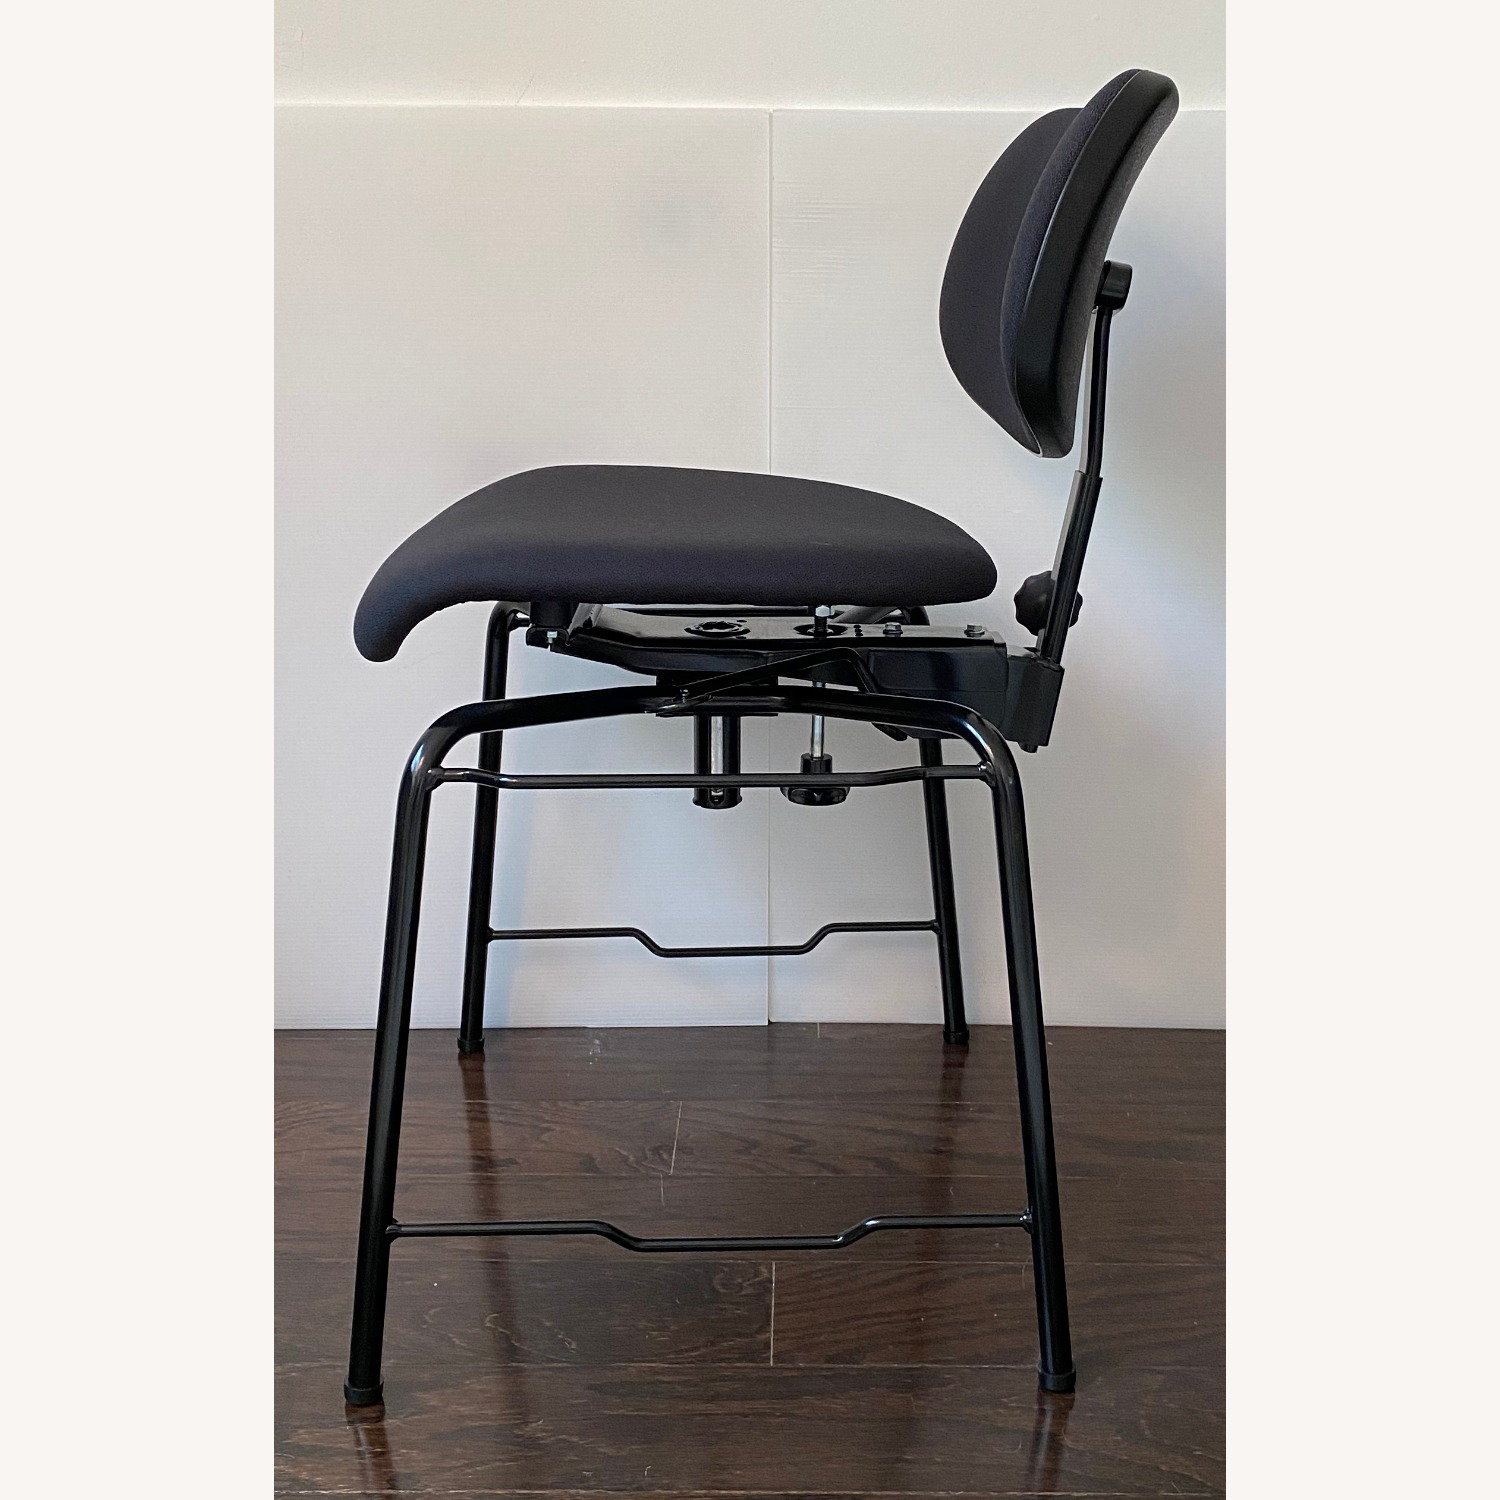 "Wilde + Spieth ""Orchestra"" Chair Black - image-13"